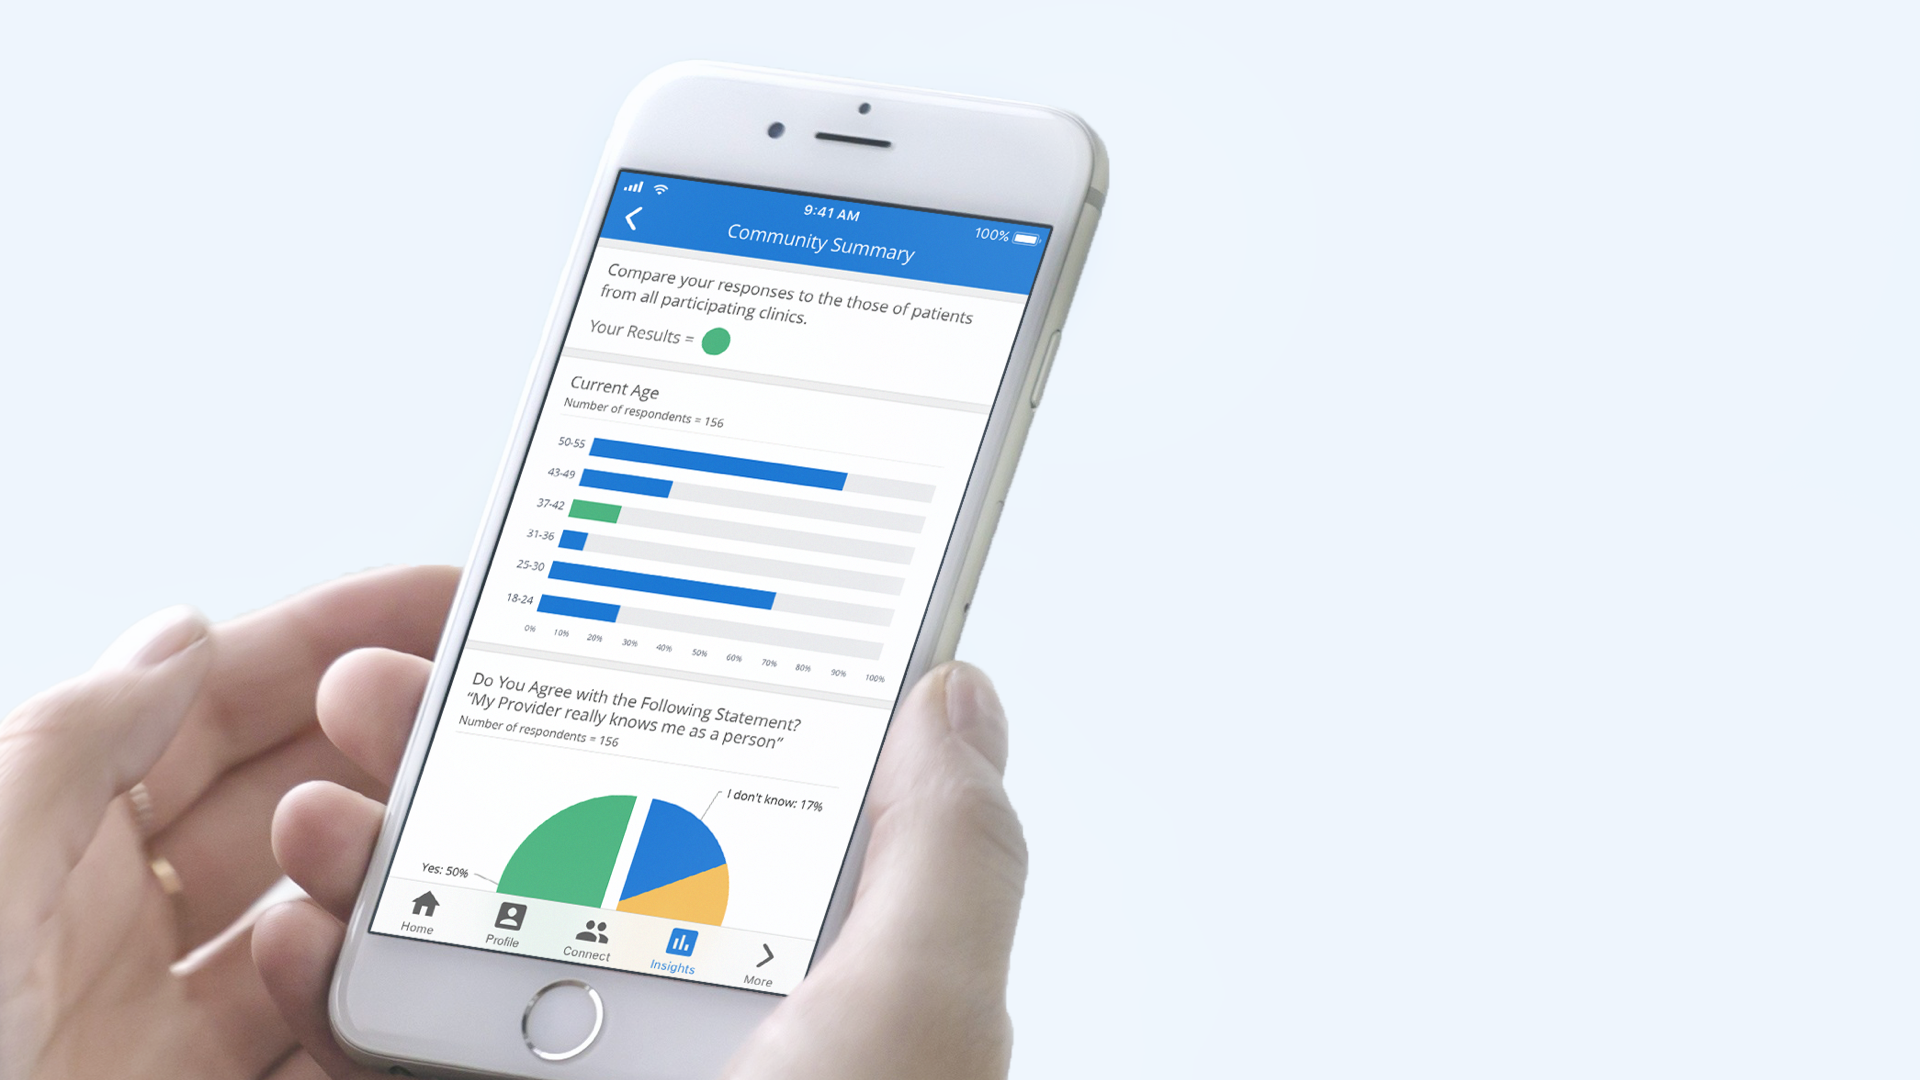 Patients can compare their data anonymously to the responses of other community members.